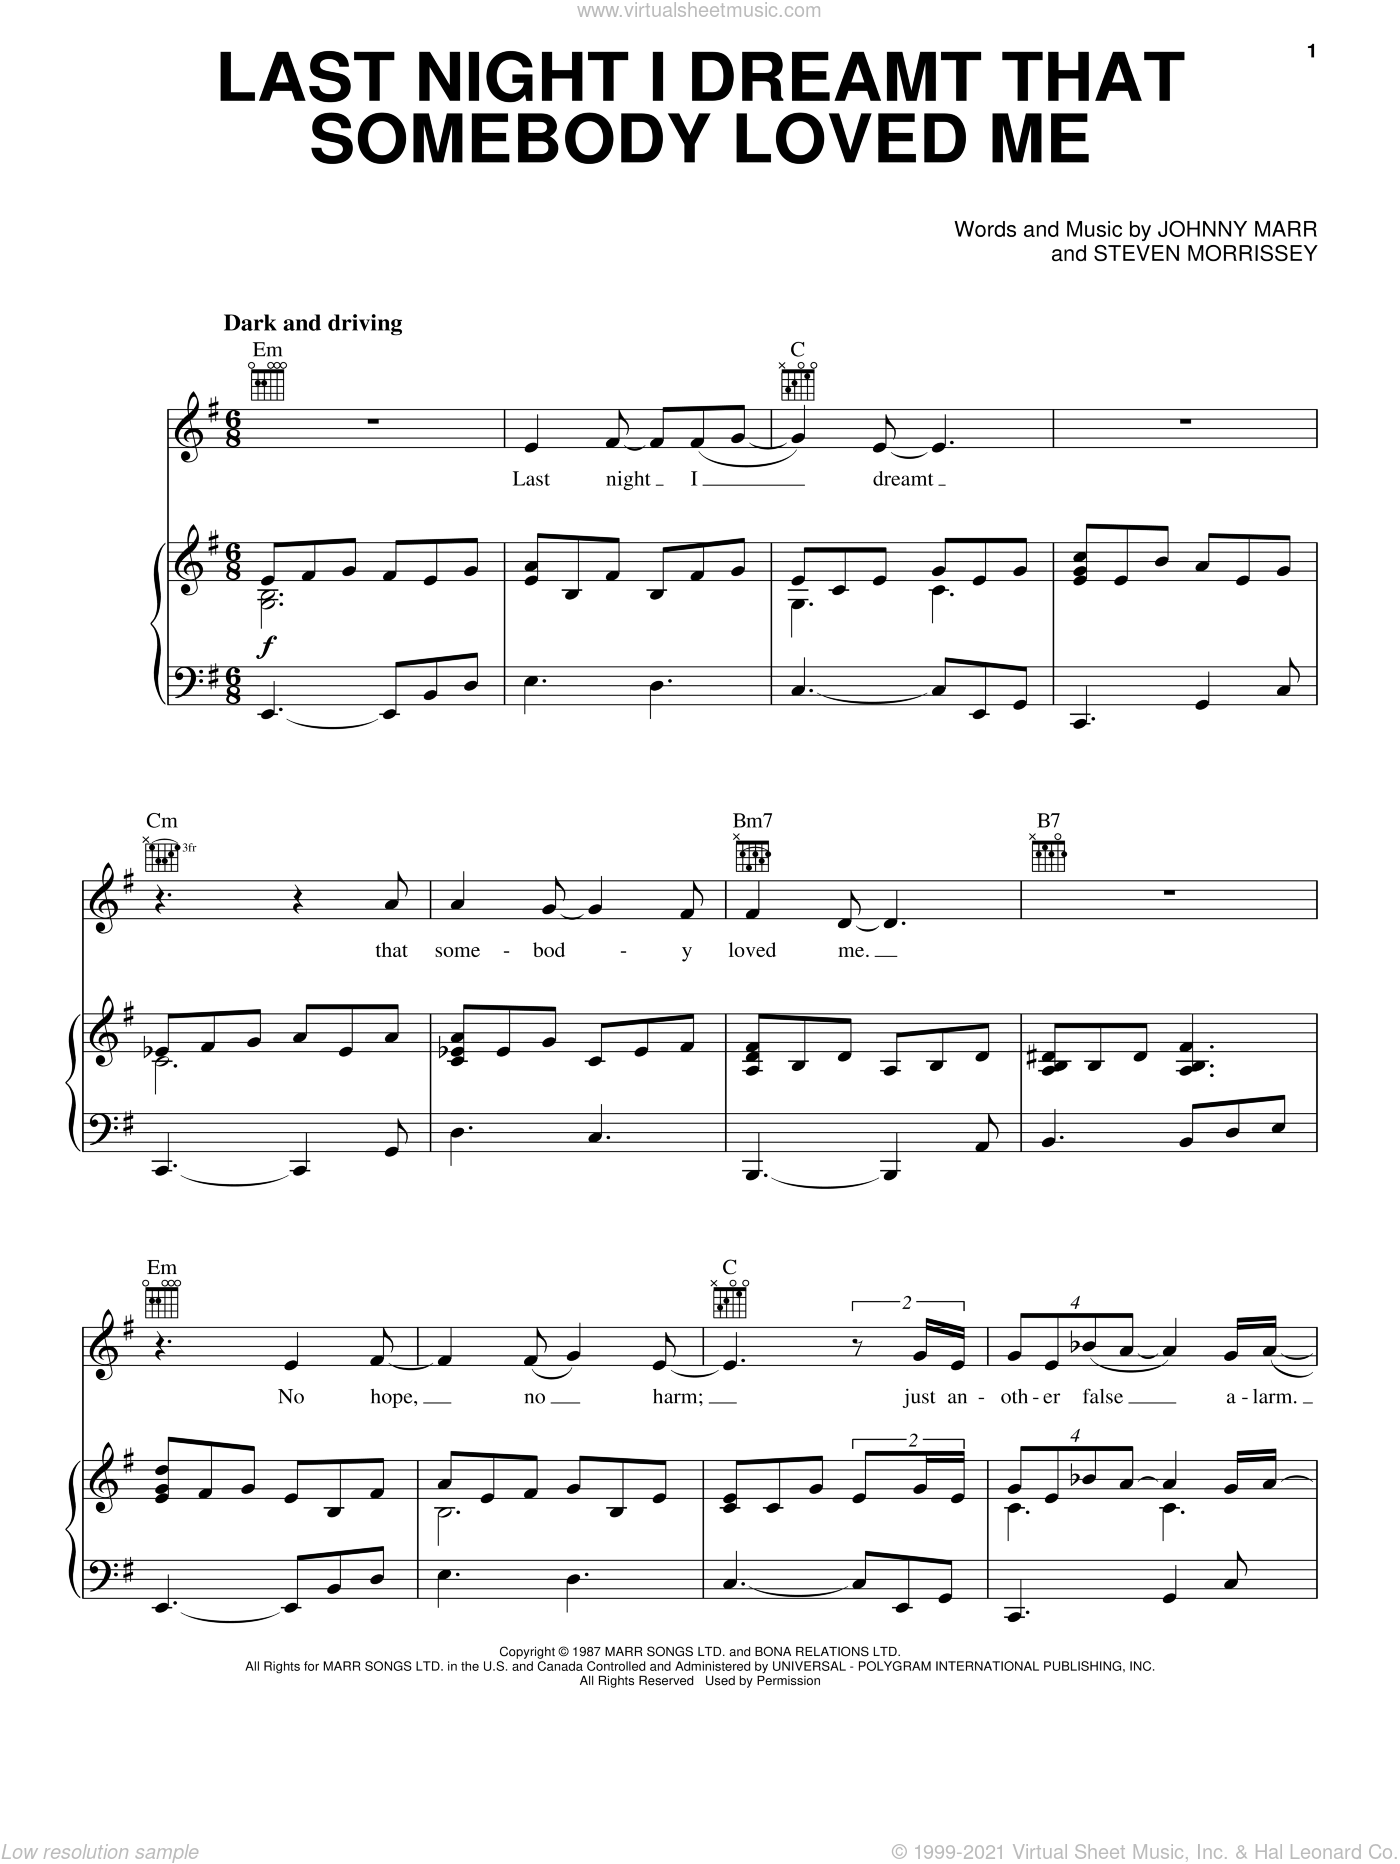 Last Night I Dreamt That Somebody Loved Me sheet music for voice, piano or guitar by Steven Morrissey